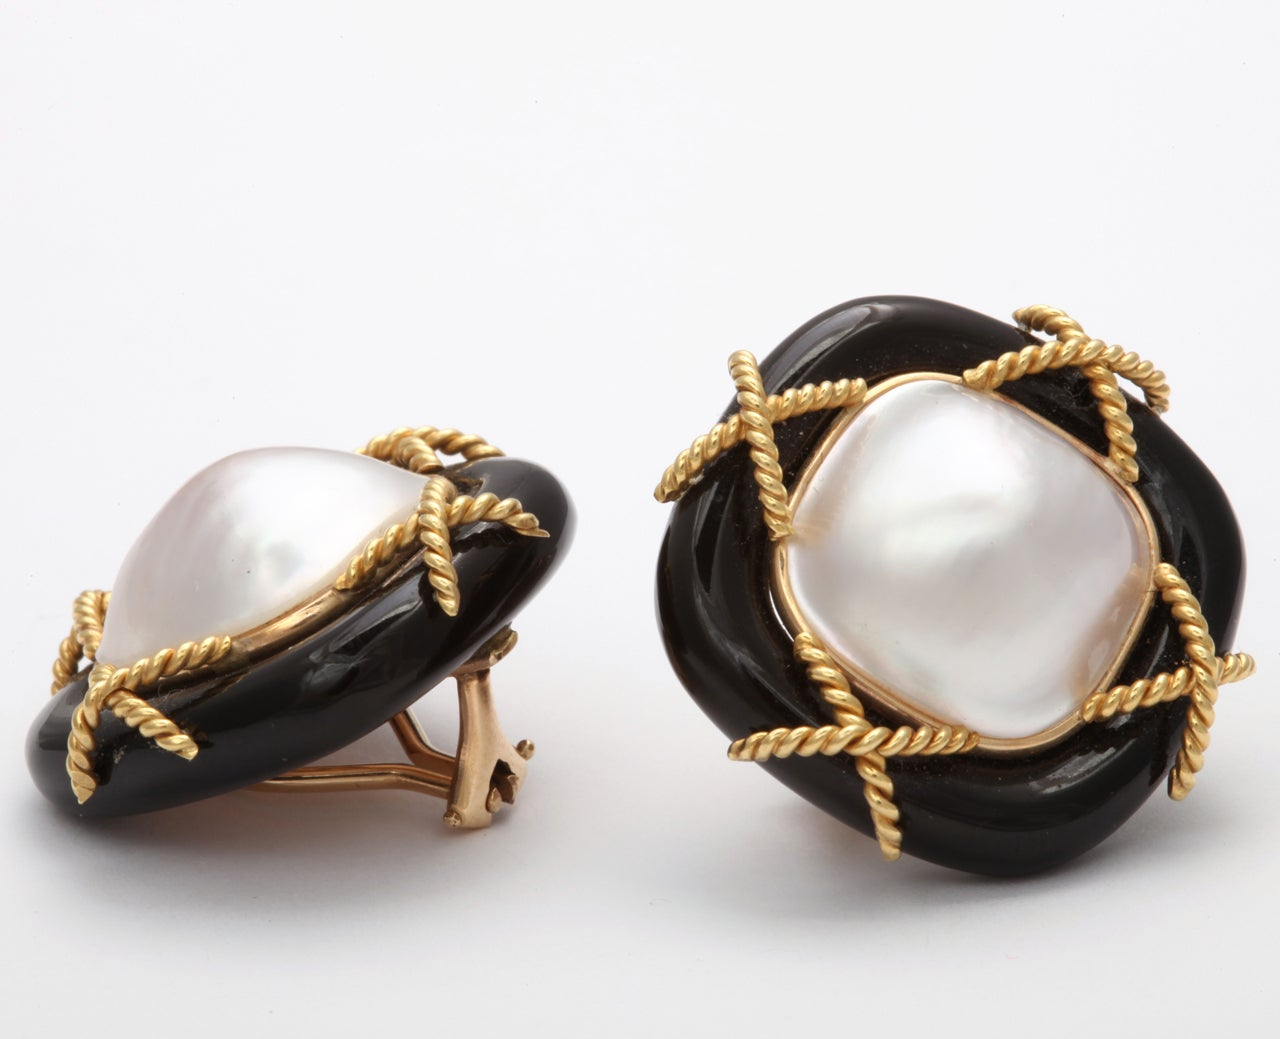 Black Onyx Pearl & Gold Clip on Earrings In Excellent Condition For Sale In New York, NY